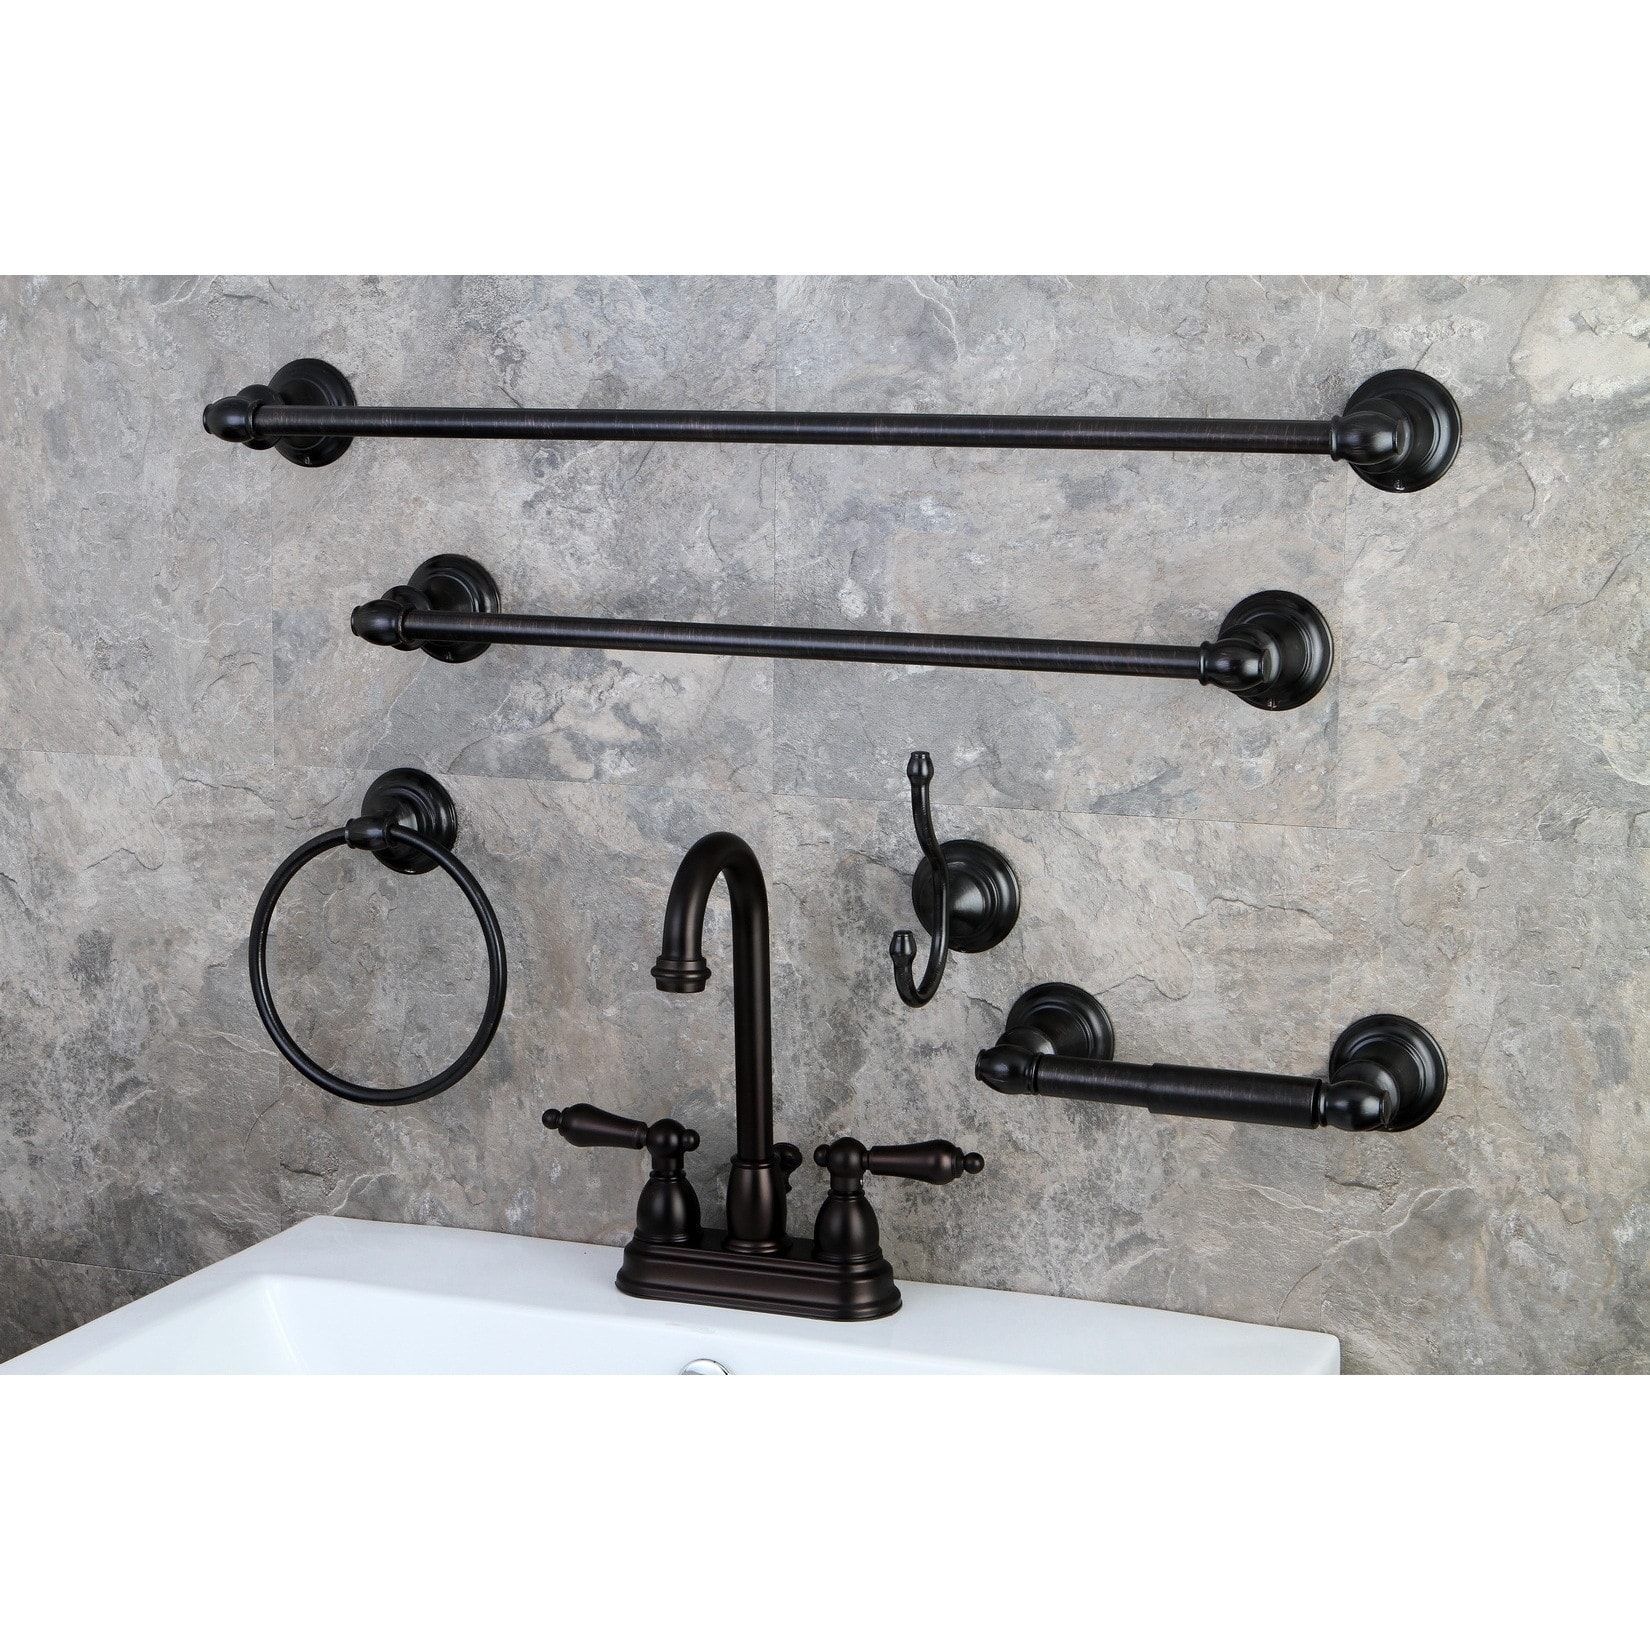 Shop High Arc Oil Rubbed Bronze Bathroom Faucet And Bathroom Accessories Set    Free Shipping Today   Overstock   8534617